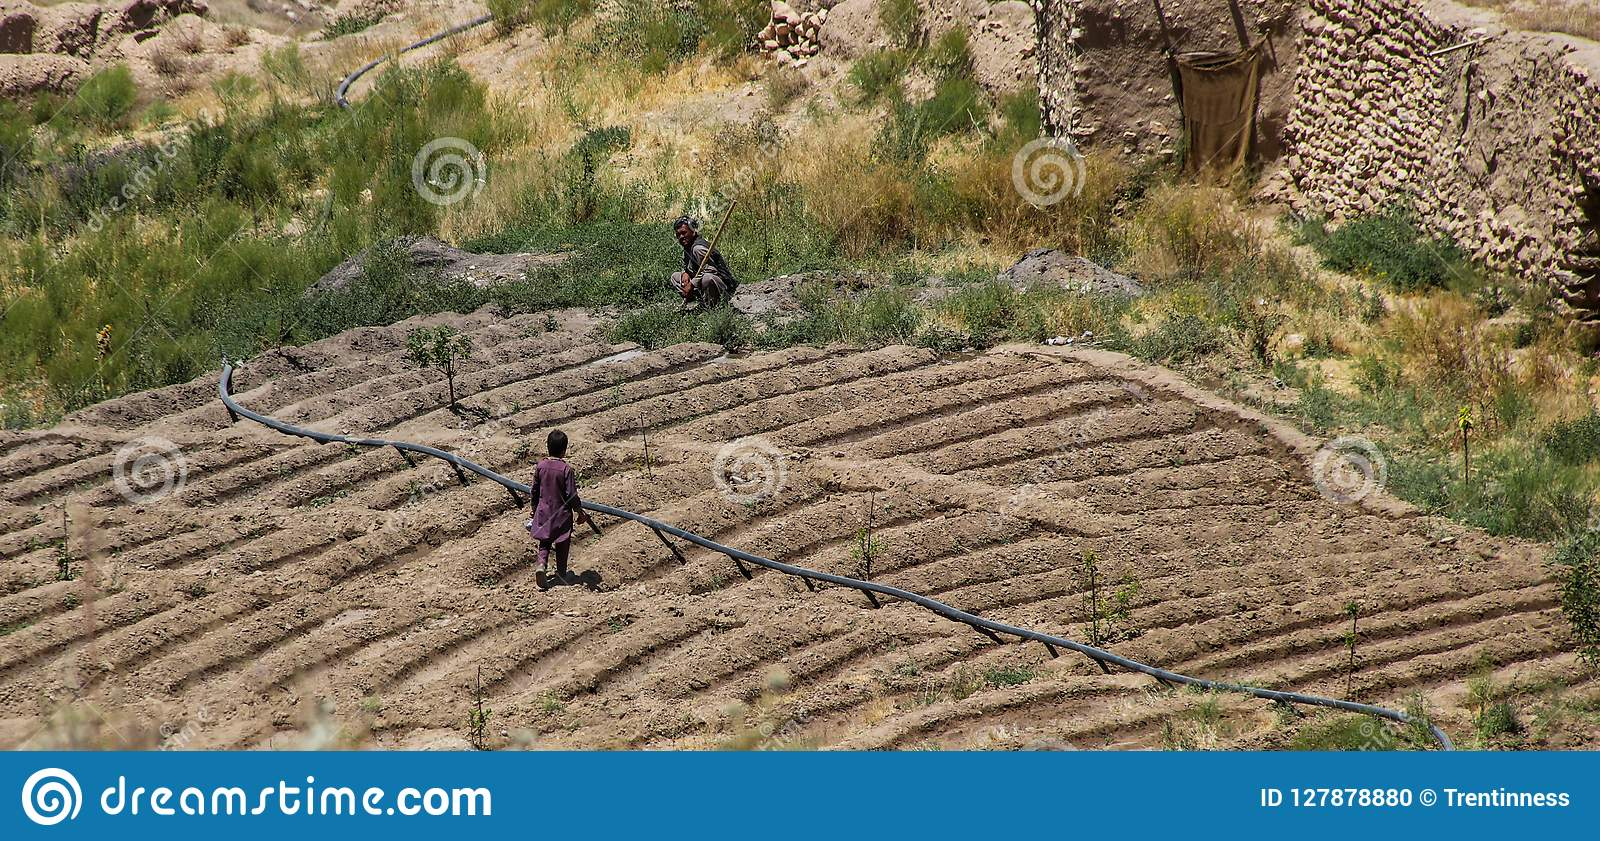 Afghanistan villagers working their plot of landctll of the school